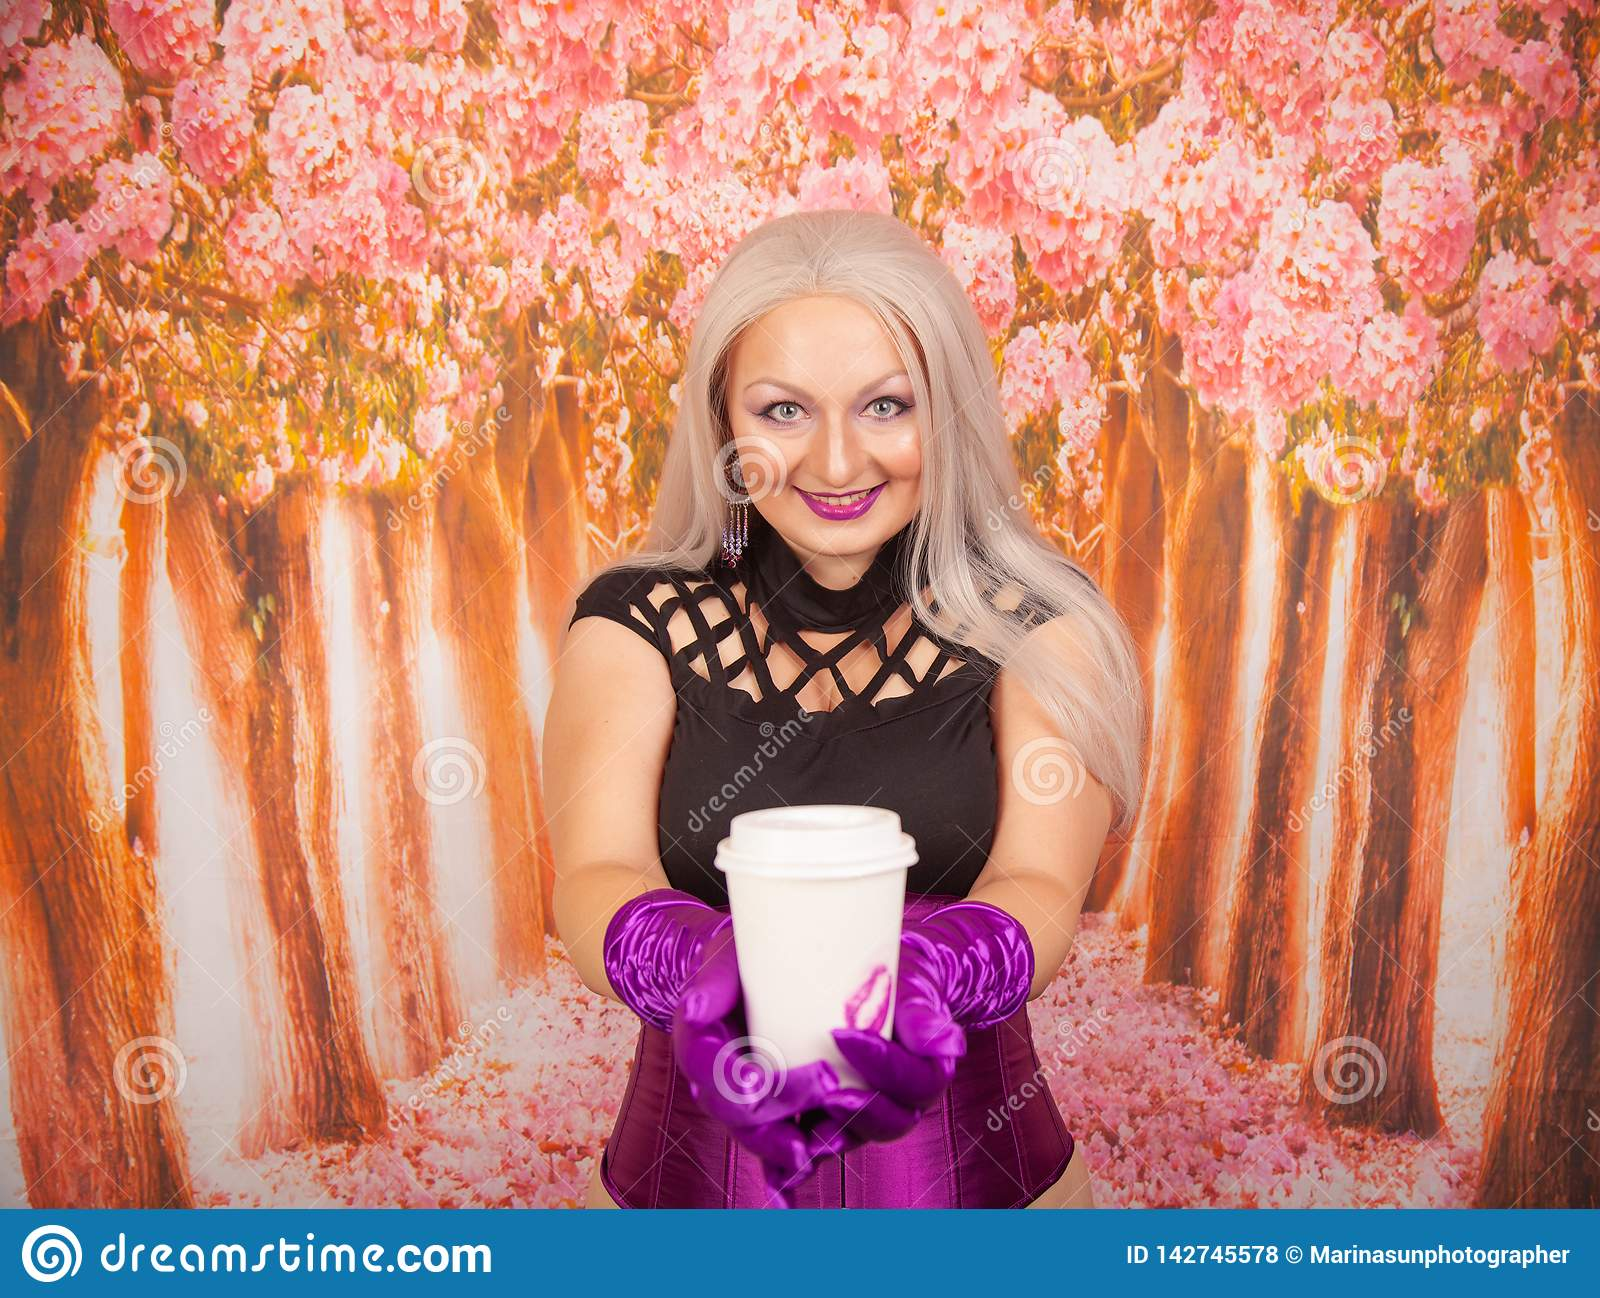 Charming plump blonde woman in a purple corset with long gloves holds a paper Cup of takeaway coffee with a mark of her lipstick k